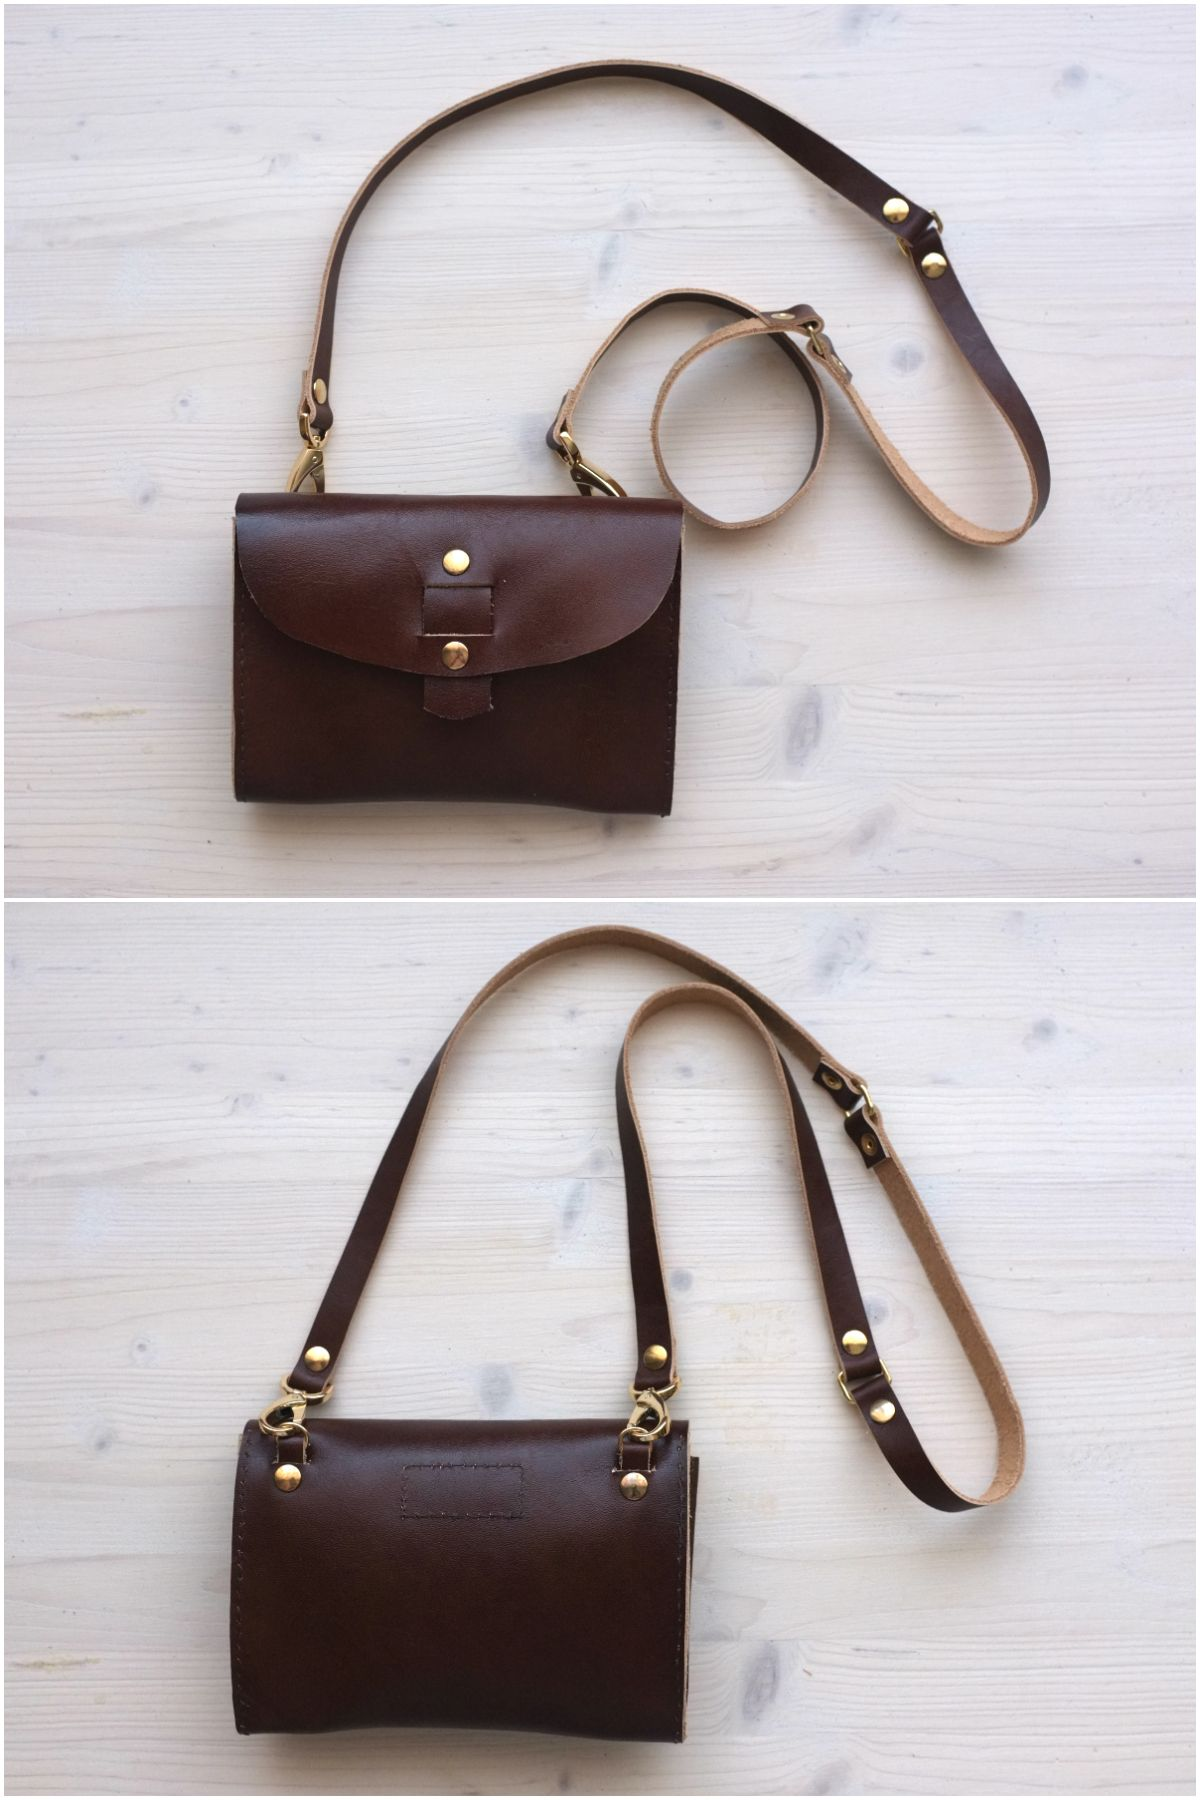 A Very Nice Small Leather Bag From Distories On Etsy Smallbag Brown Gold